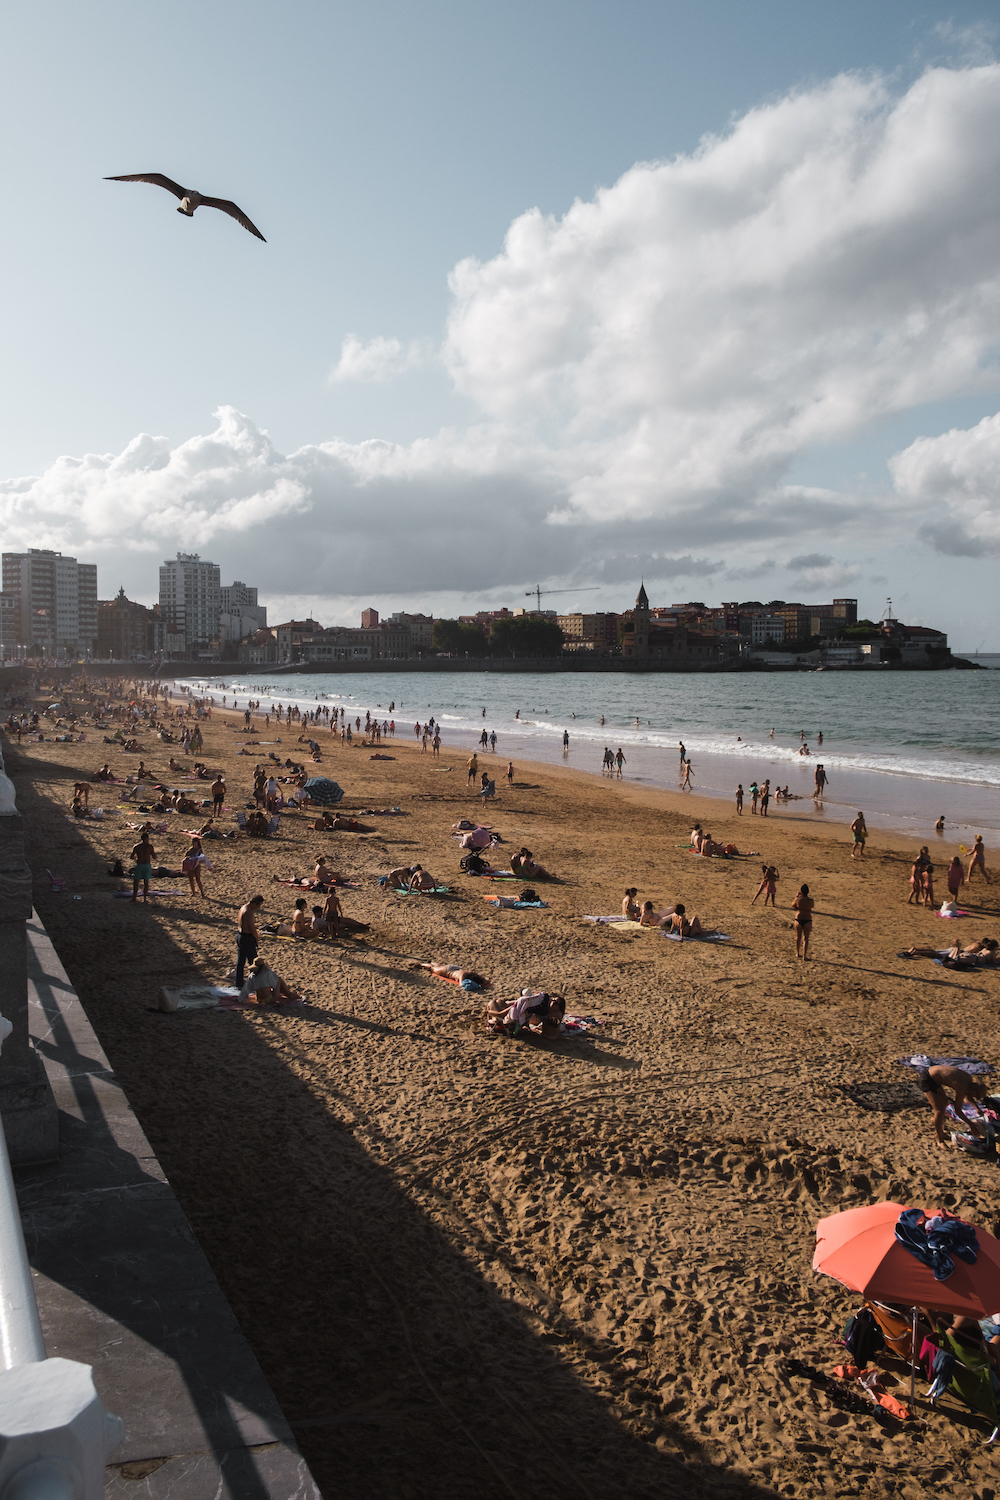 San Lorenzo Beach, Gijón, Asturias (northern Spain) by Ben Holbrook from DriftwoodJournals.com